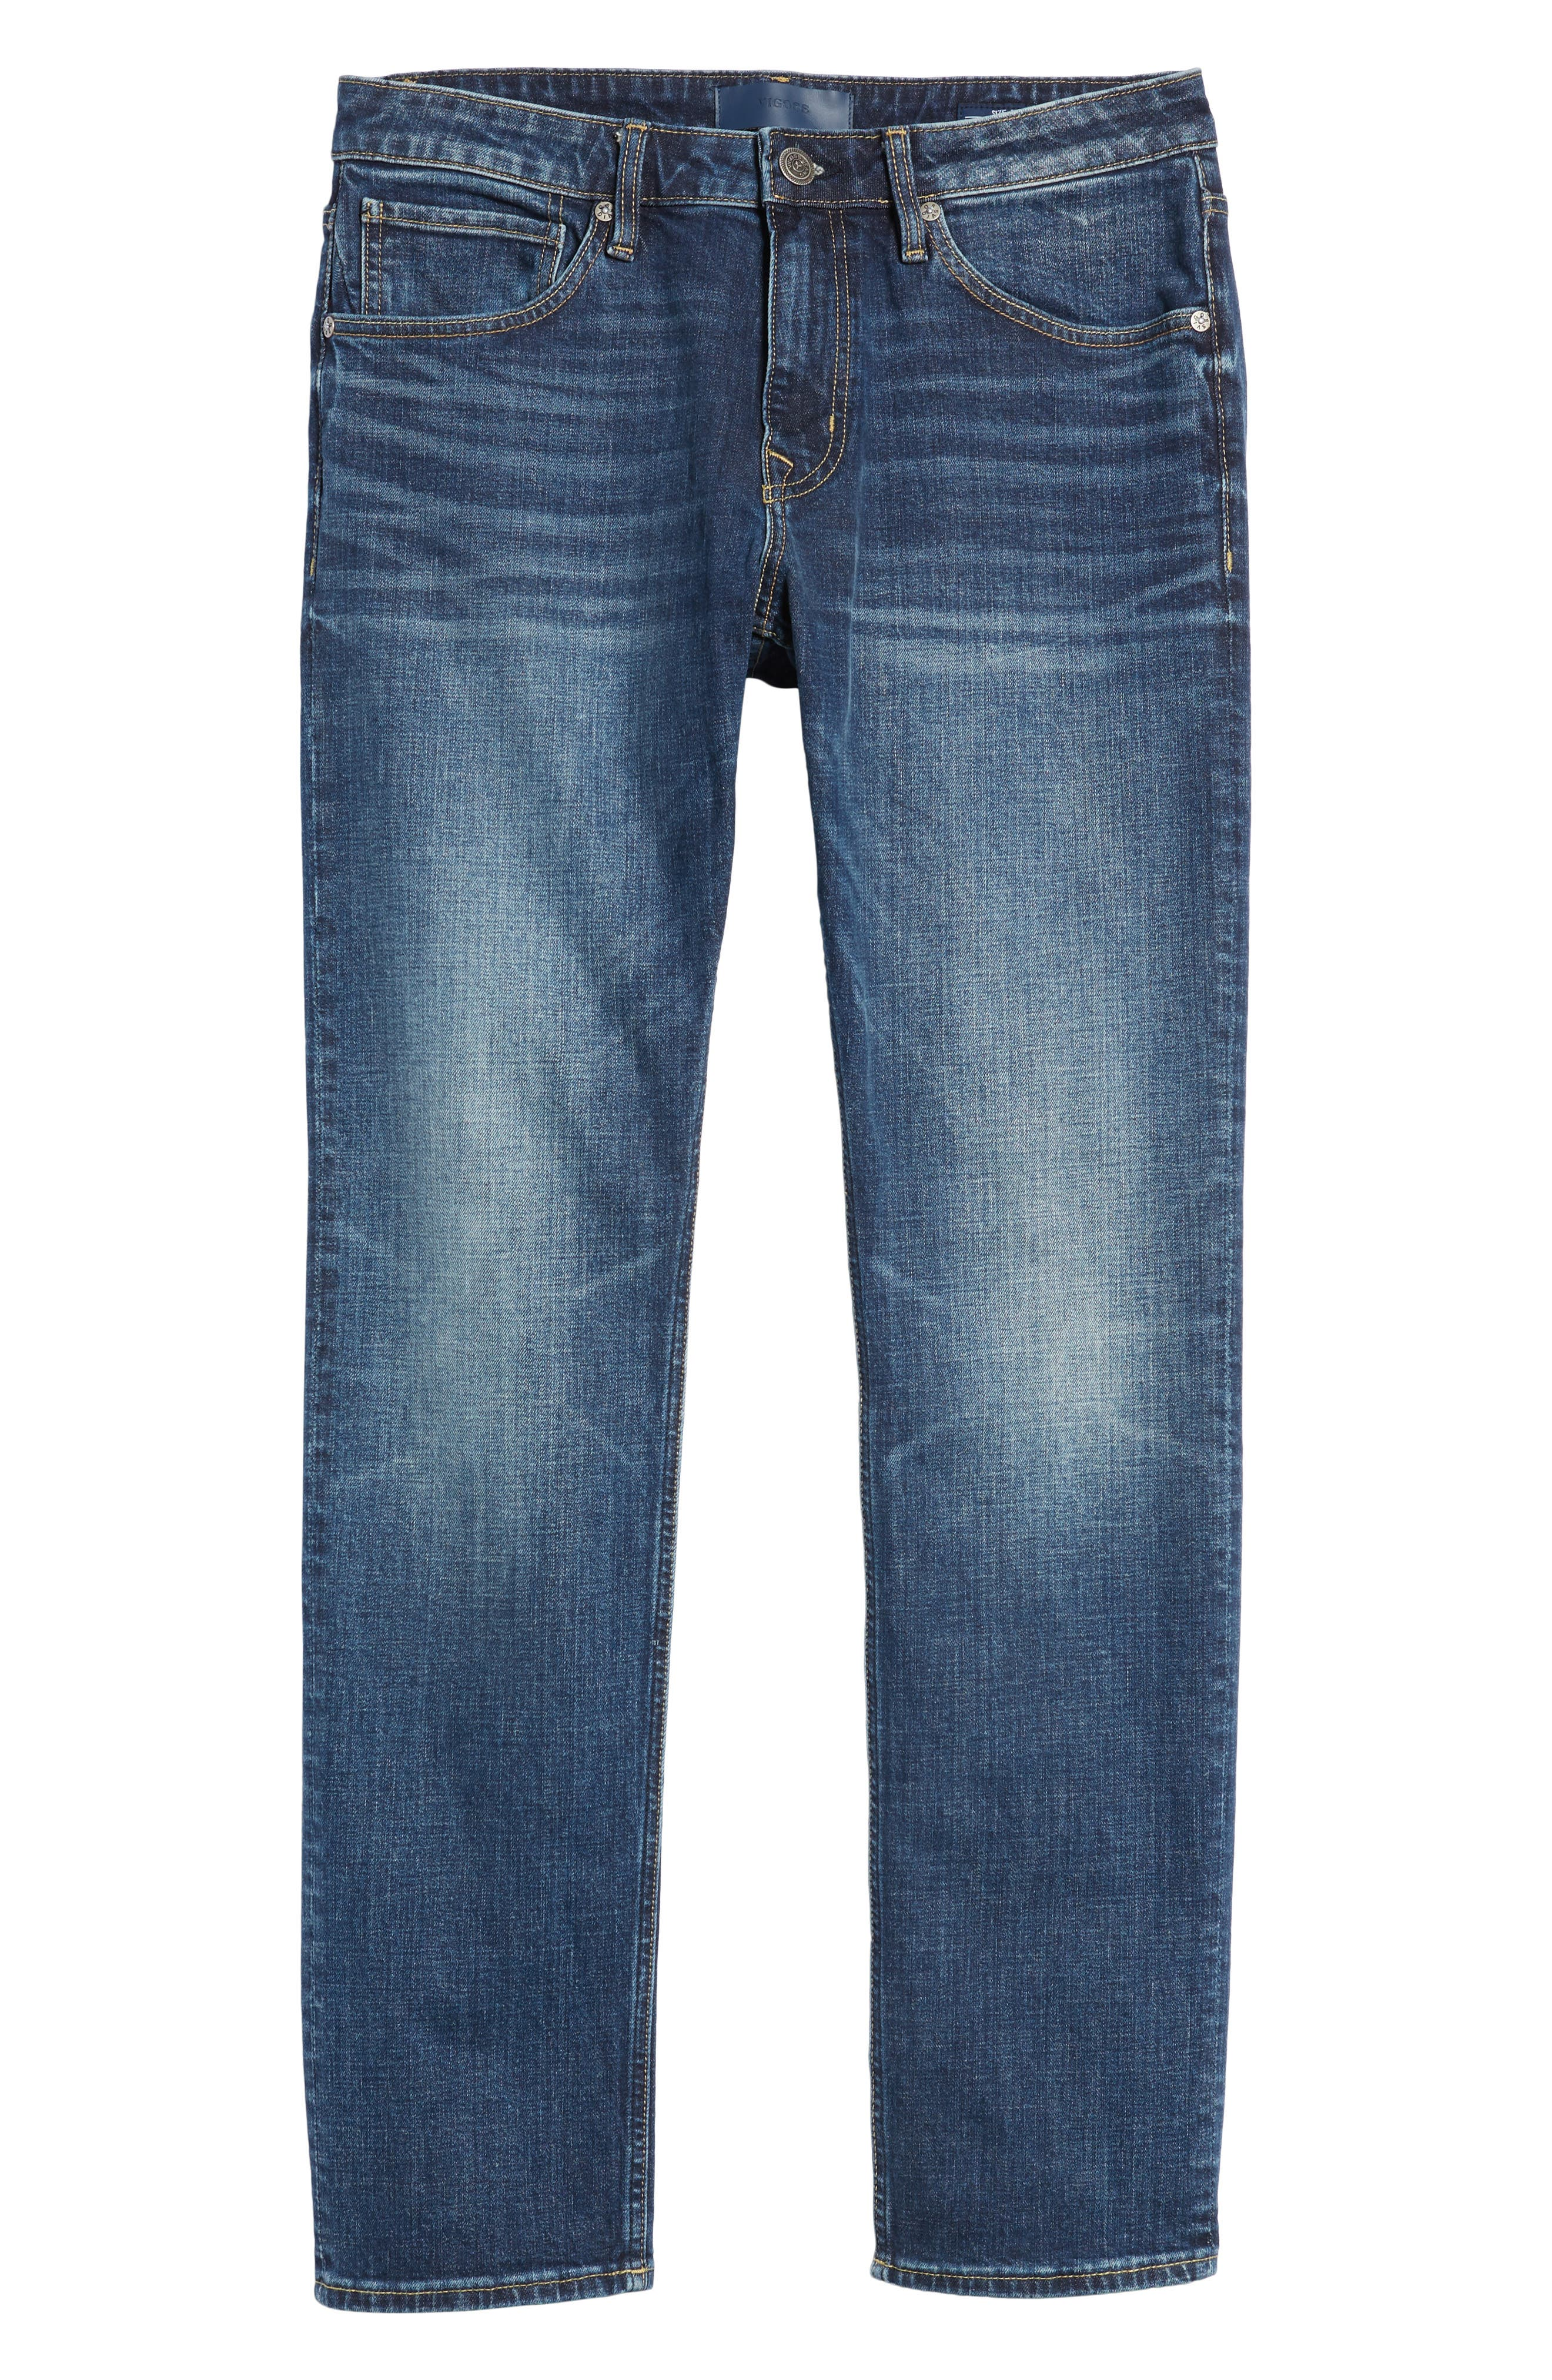 Slim Straight Leg Jeans,                             Alternate thumbnail 6, color,                             MEDIUM WASH